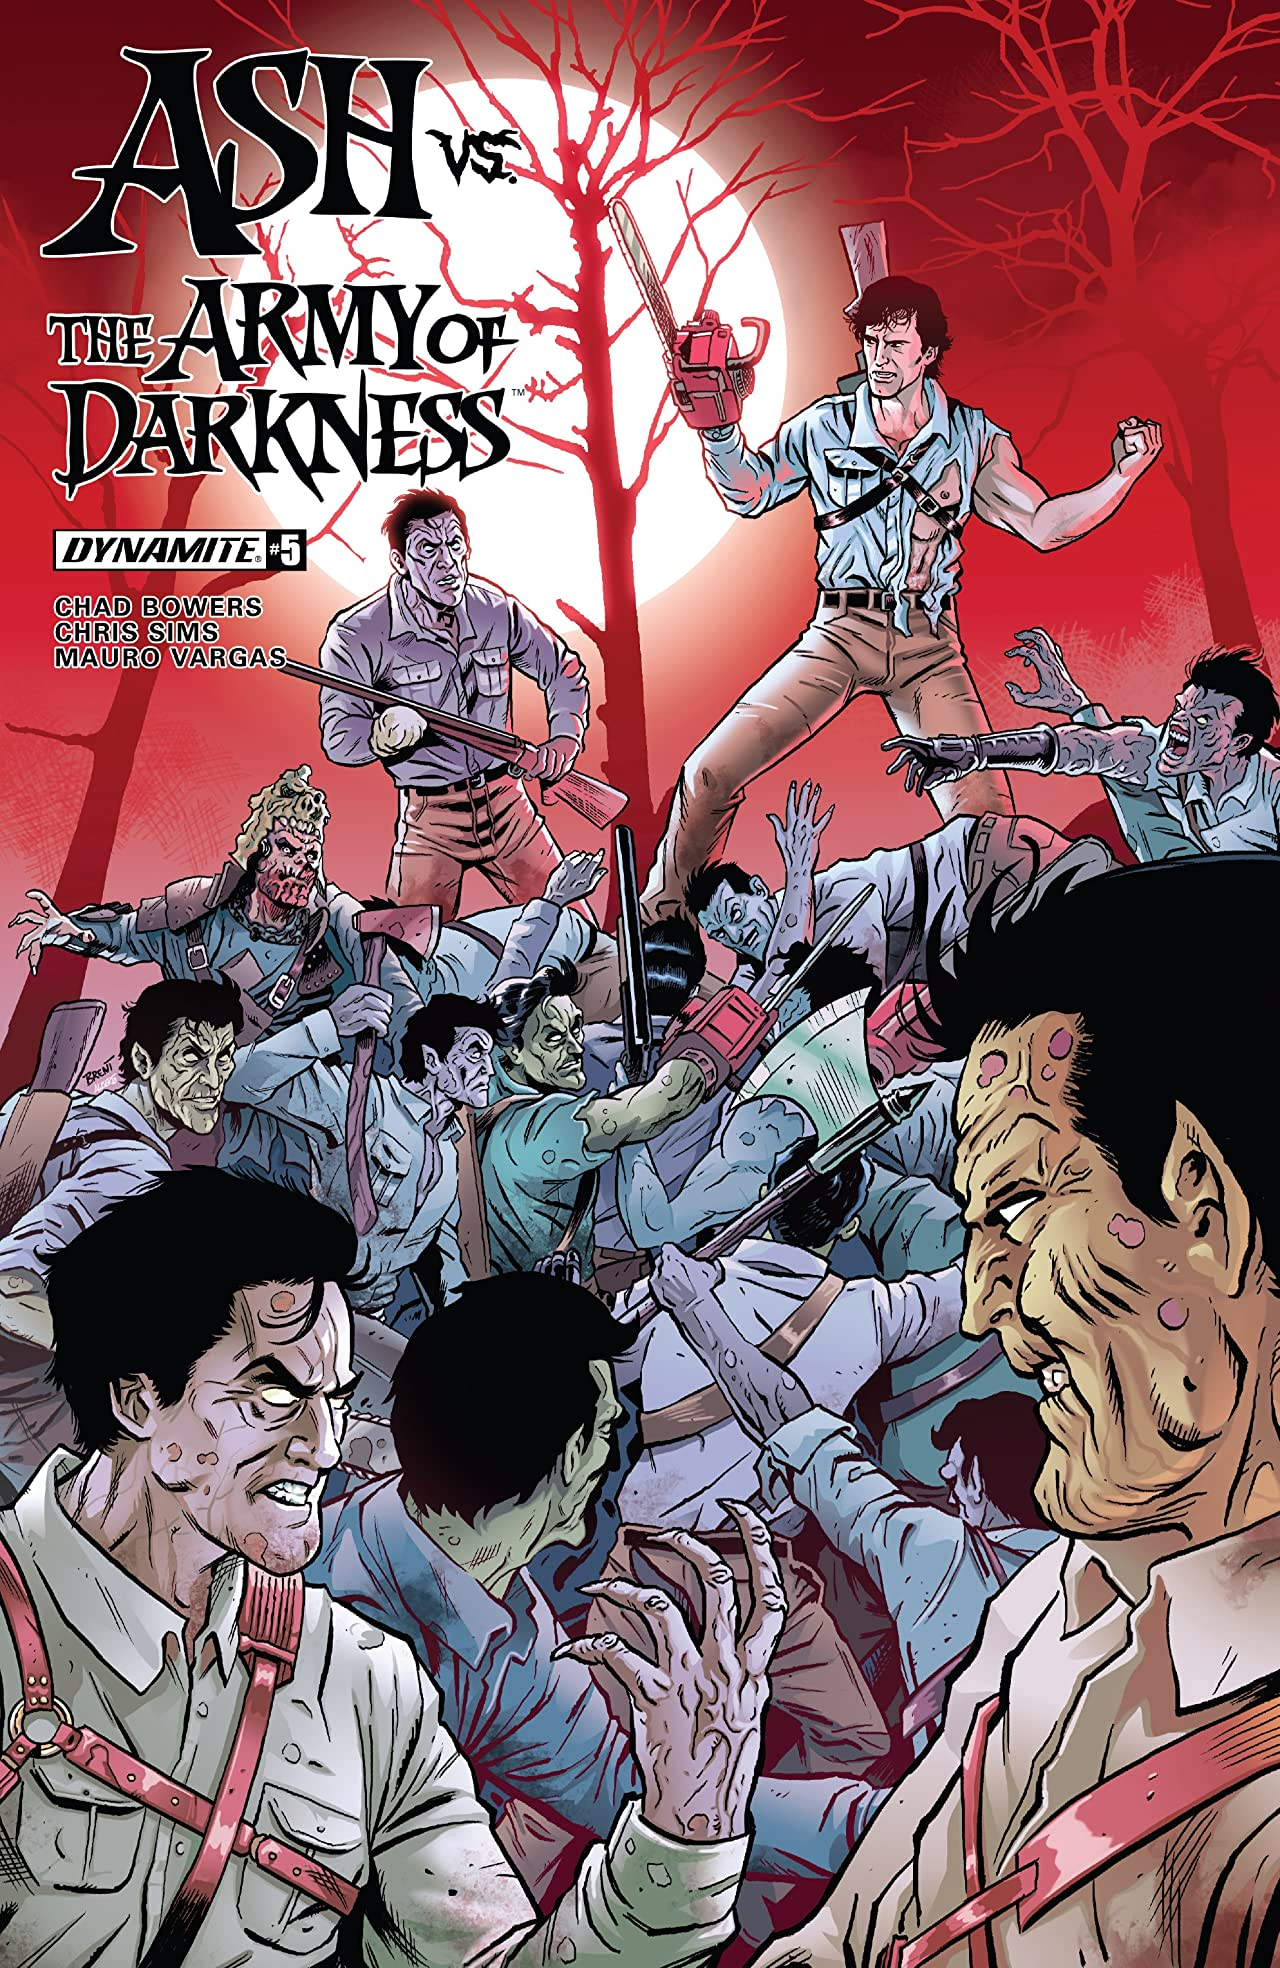 Ash Vs. The Army Of Darkness #5